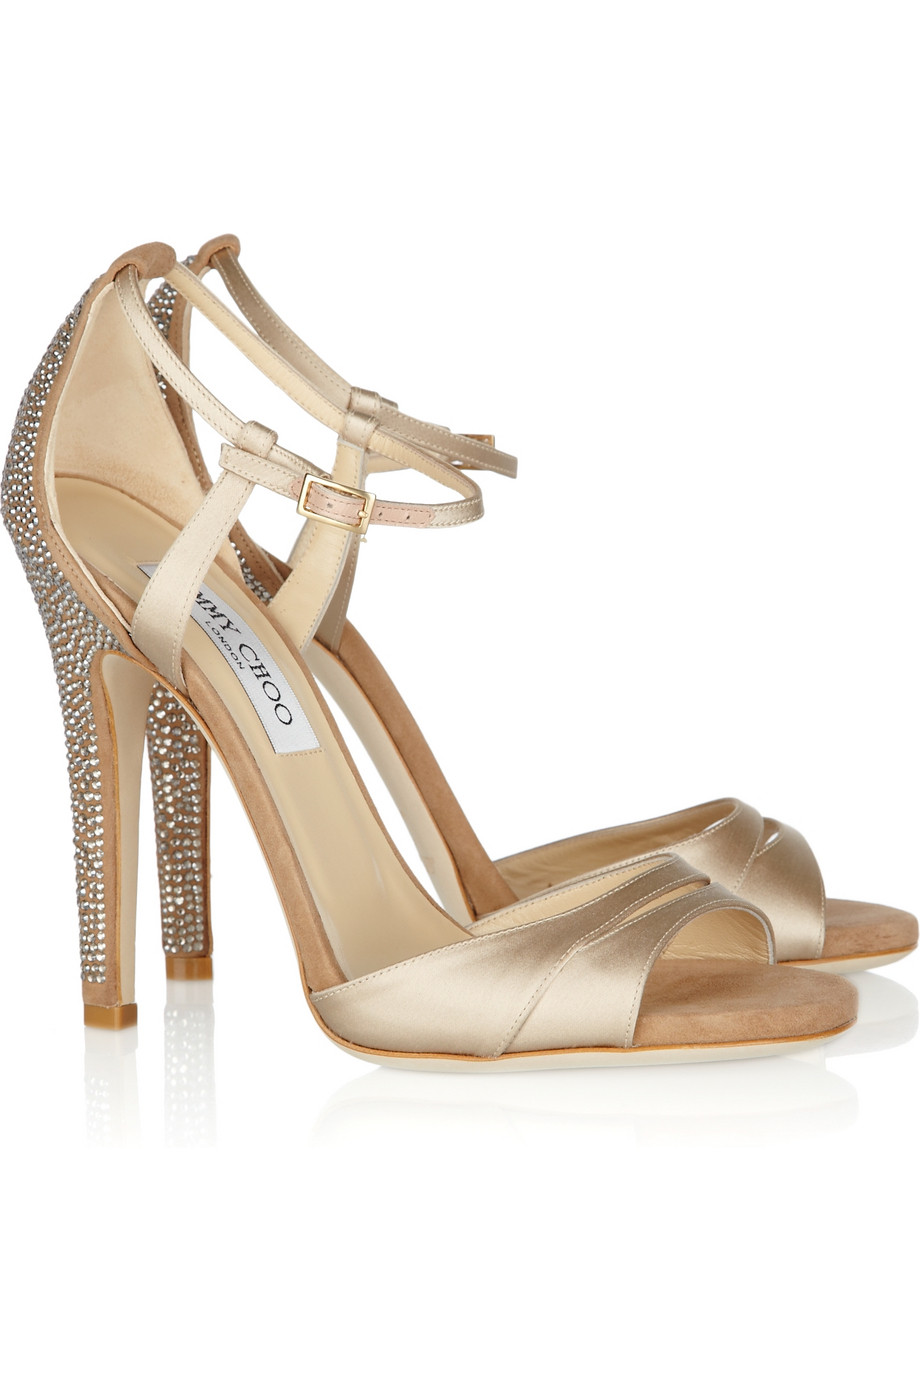 Lyst Jimmy Choo Tema Crystal Embellished Satin And Suede